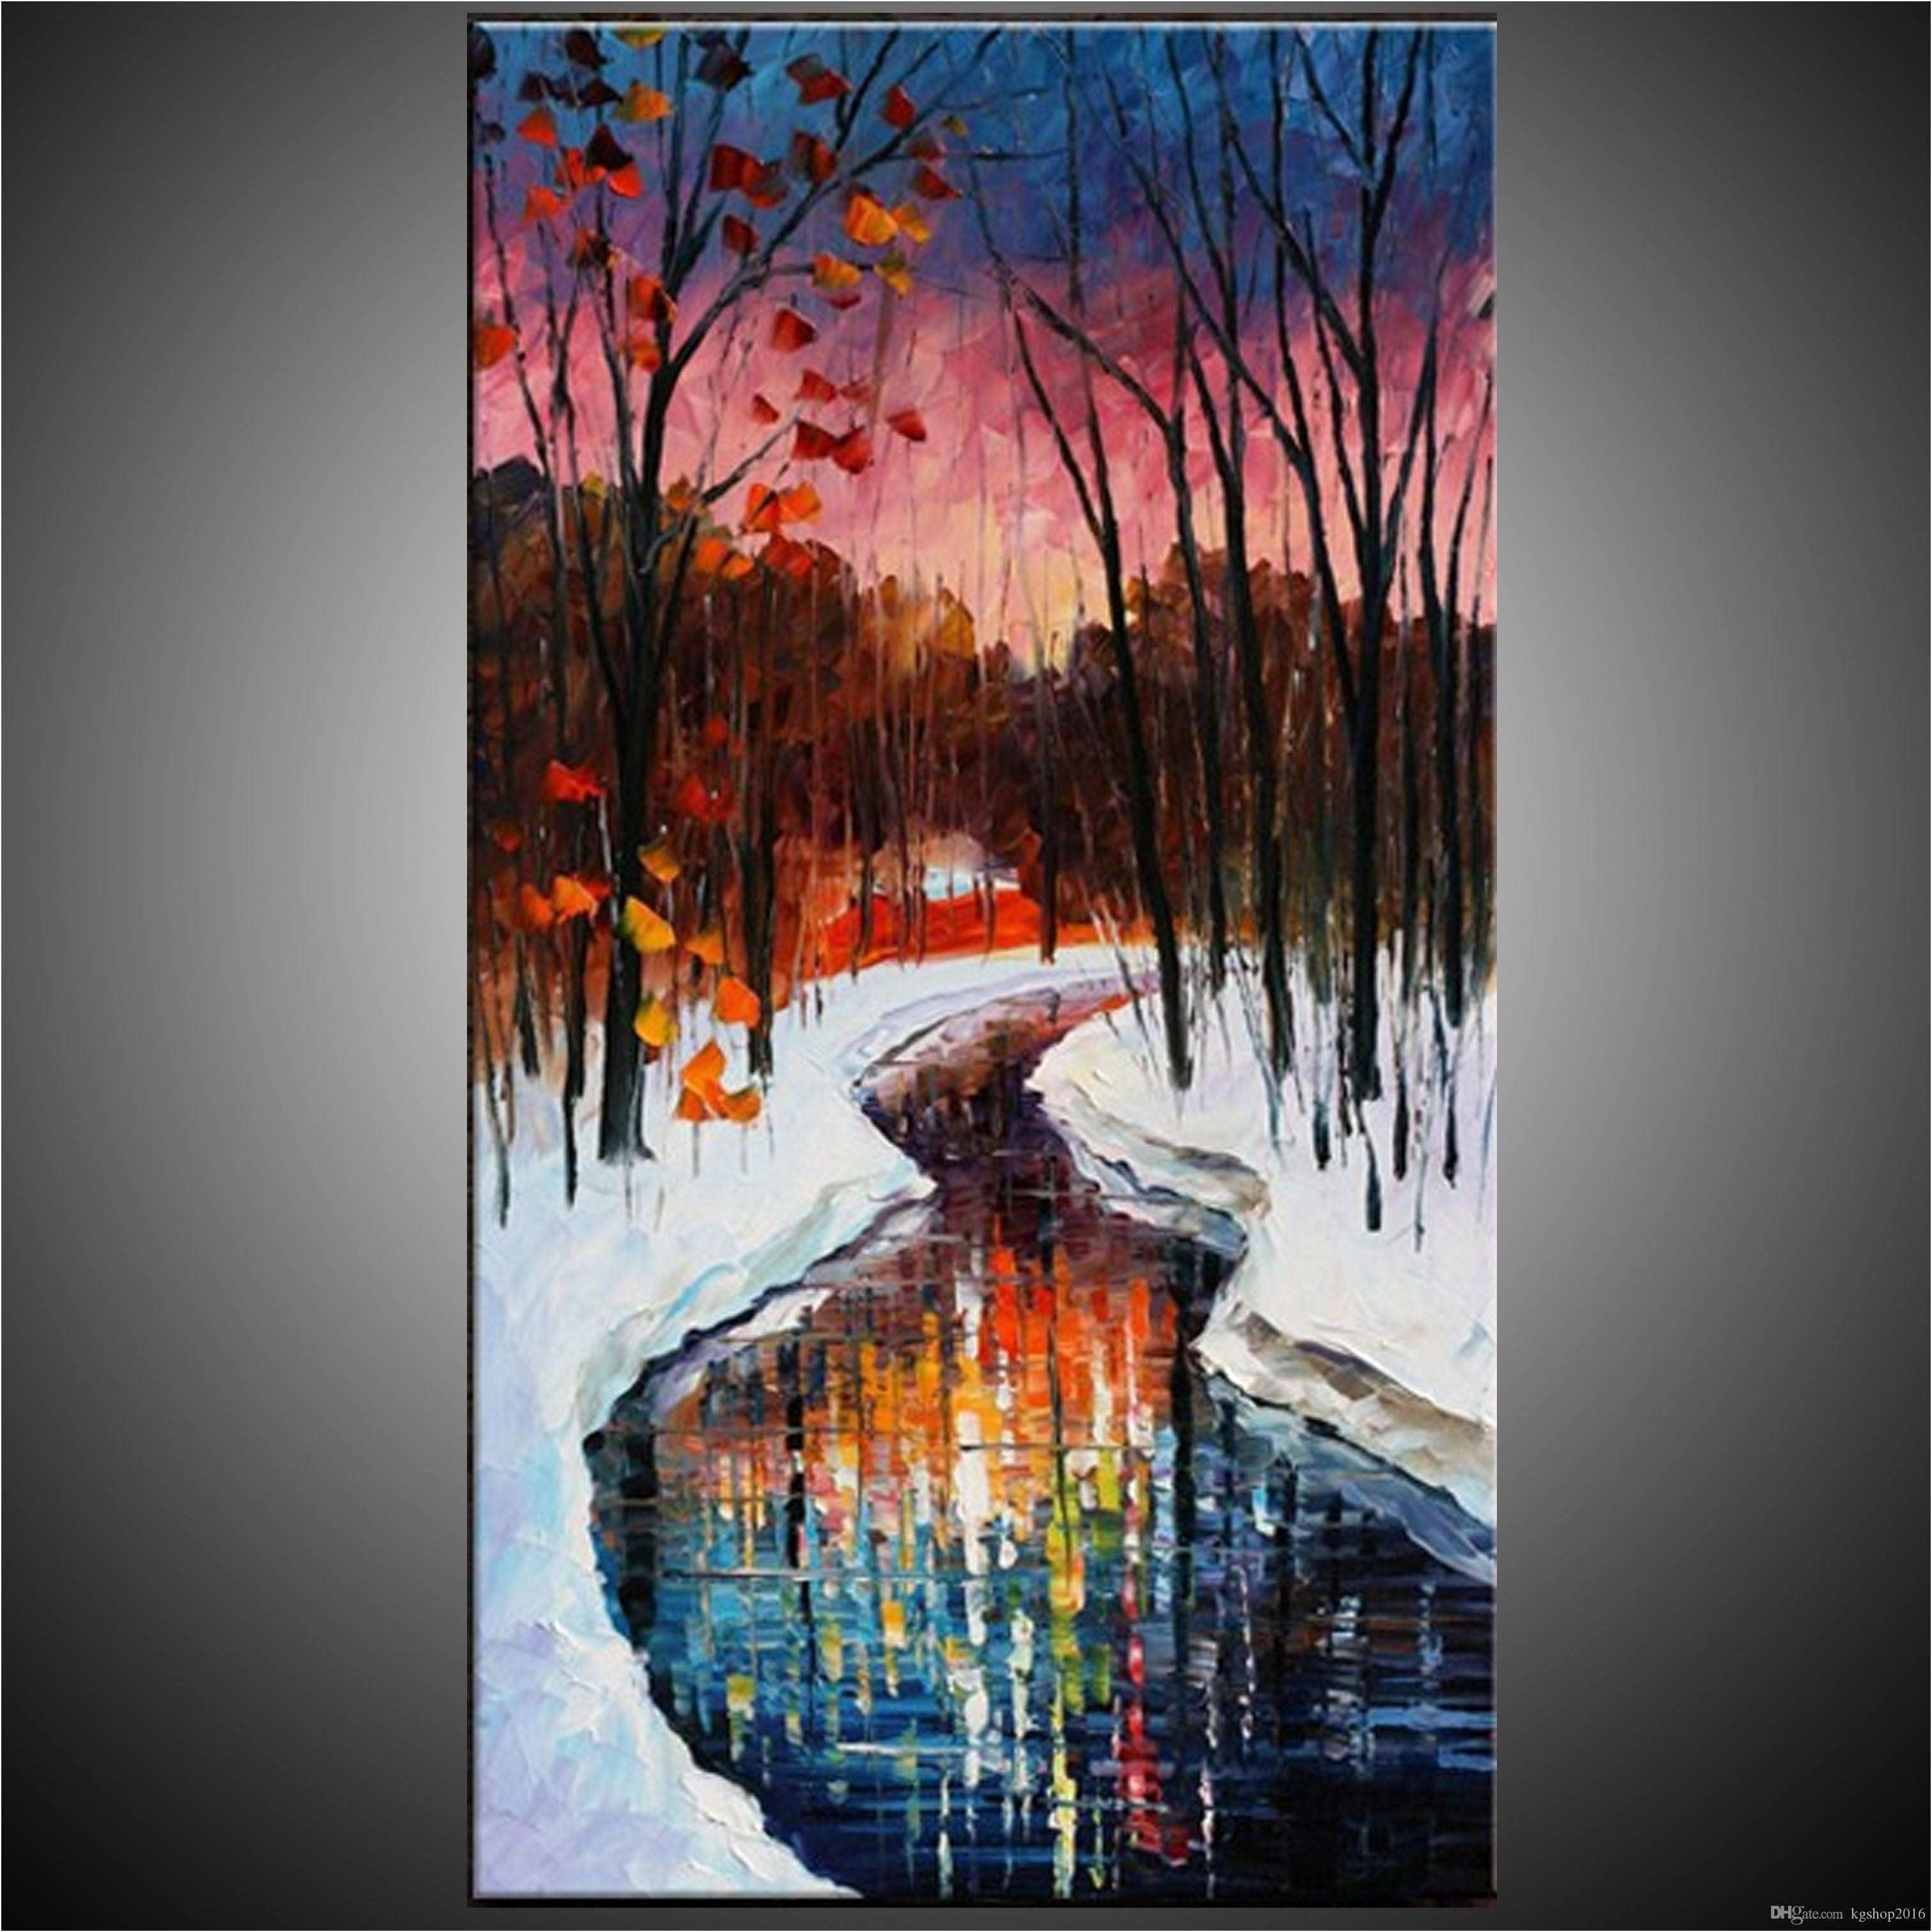 Pretty Bright Paintings On Canvas Bright Paintings On Canvas Ideas Kg Handmade Acrylic Painting Canvas Art Beautiful Art Paintings Bright Paintings Painting